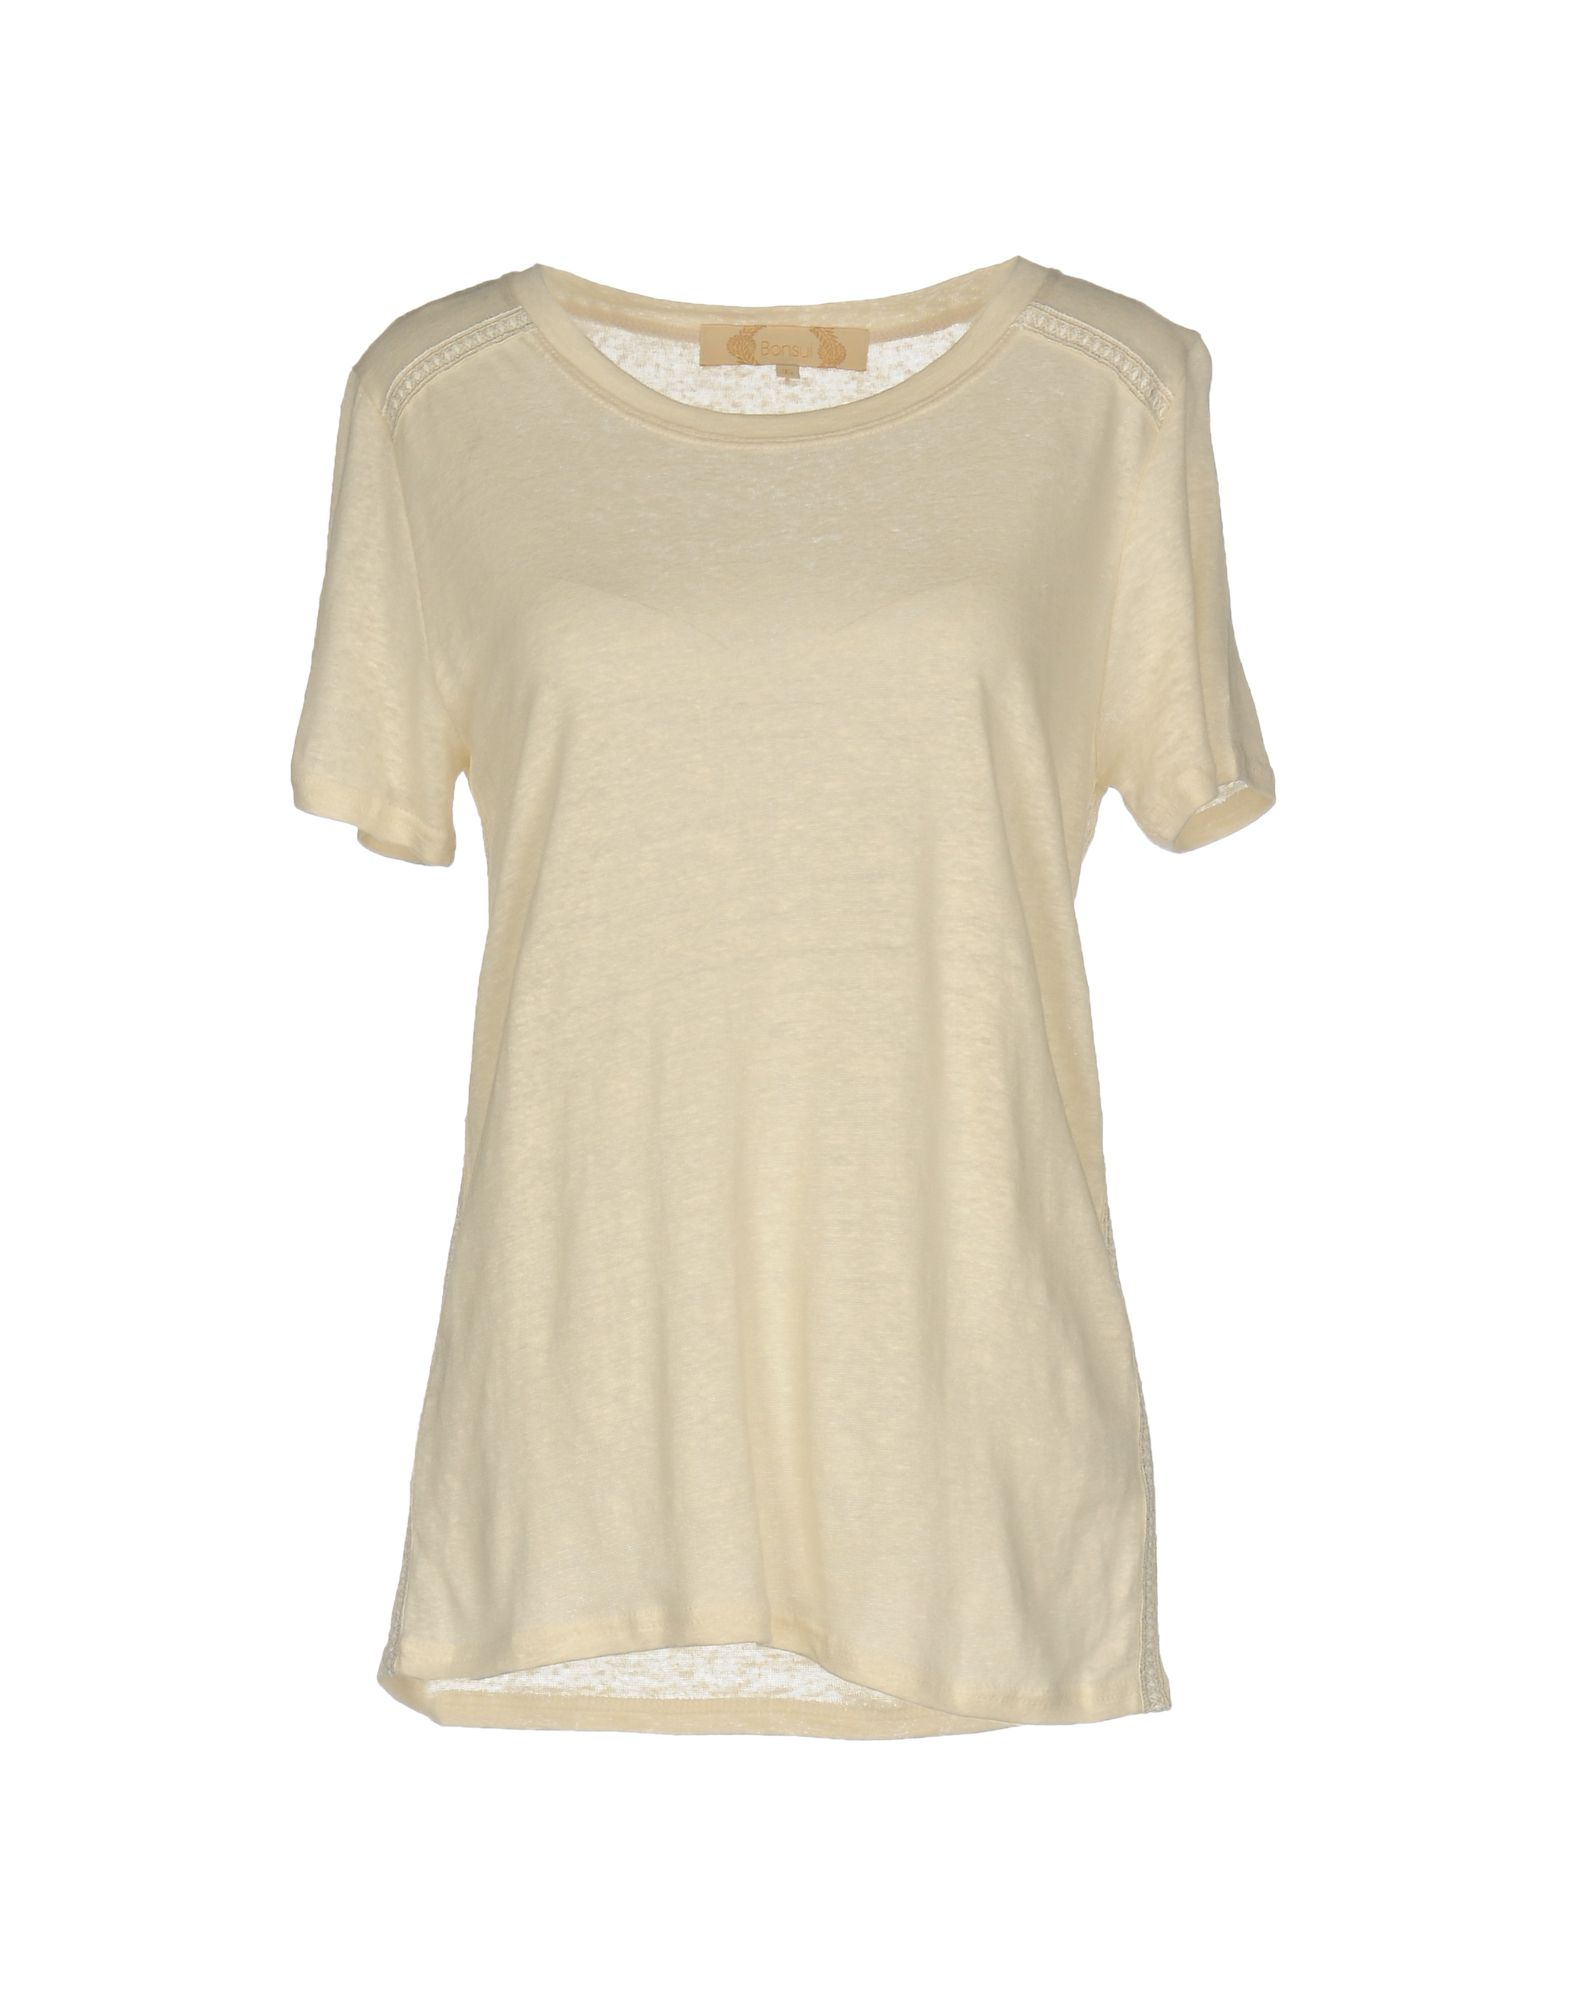 BONSUI Sweater in Ivory